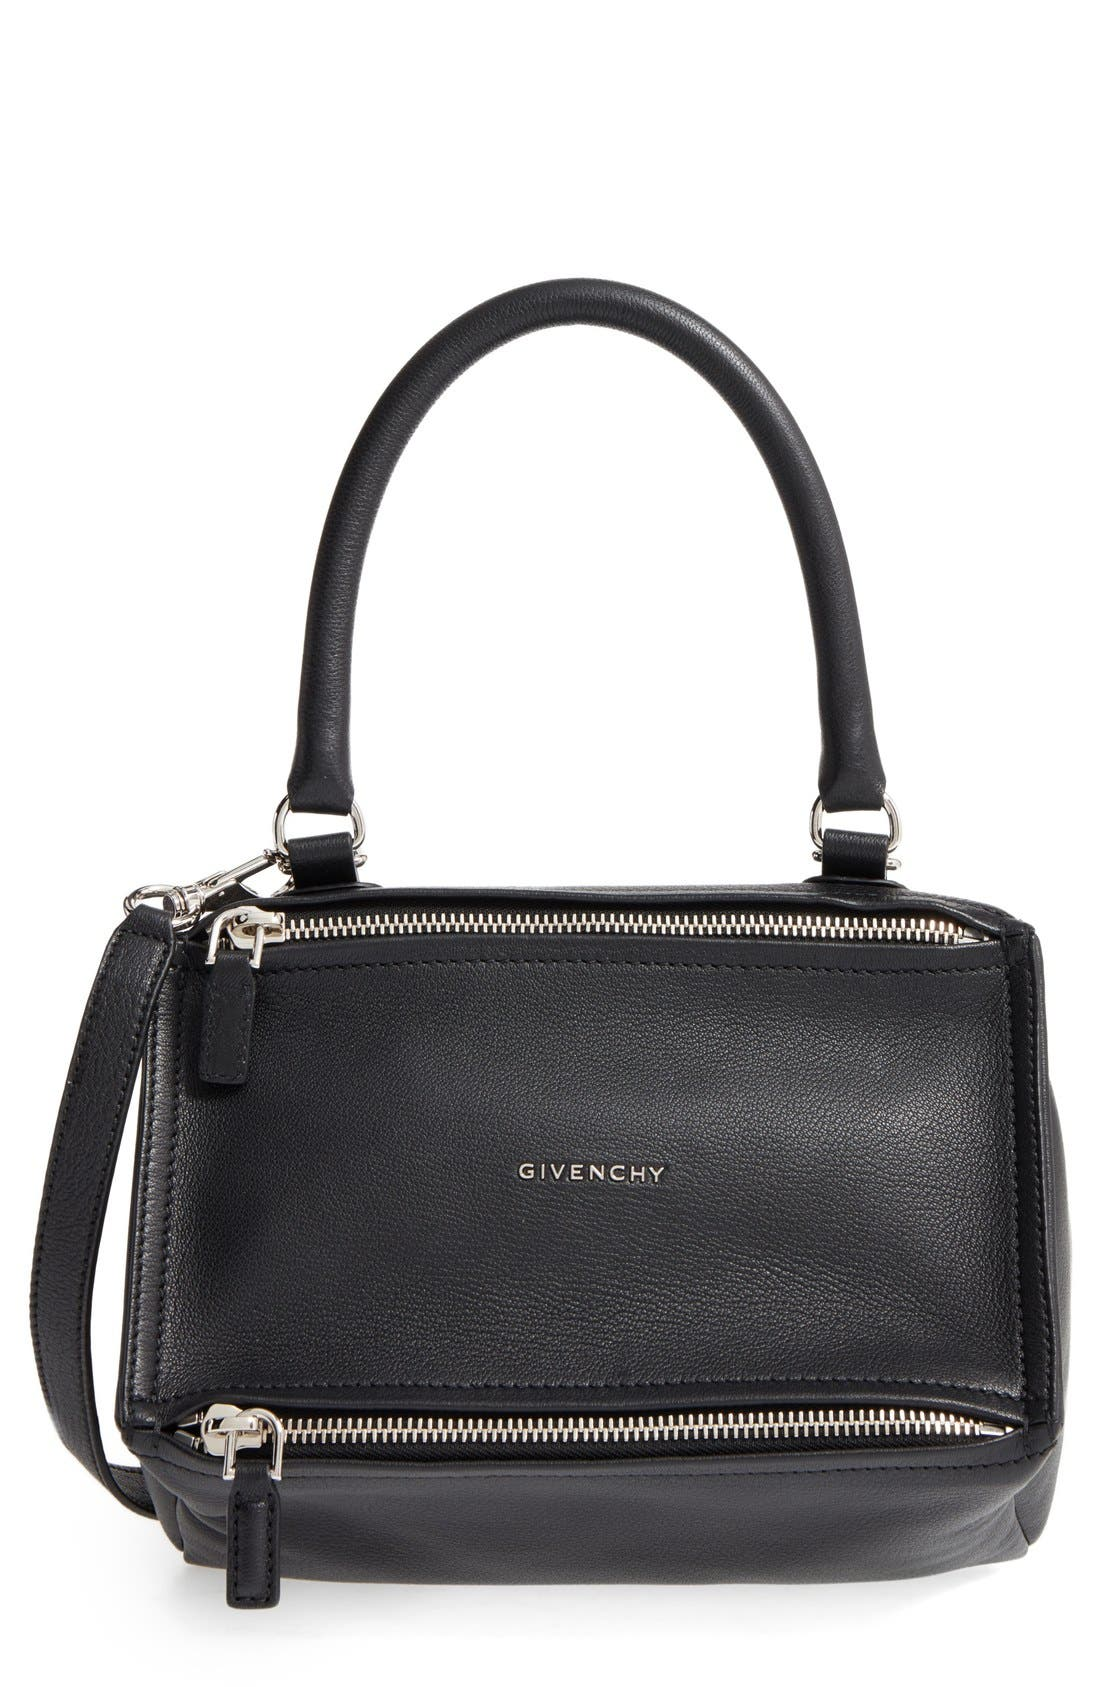 Alternate Image 1 Selected - Givenchy 'Small Pandora' Leather Satchel